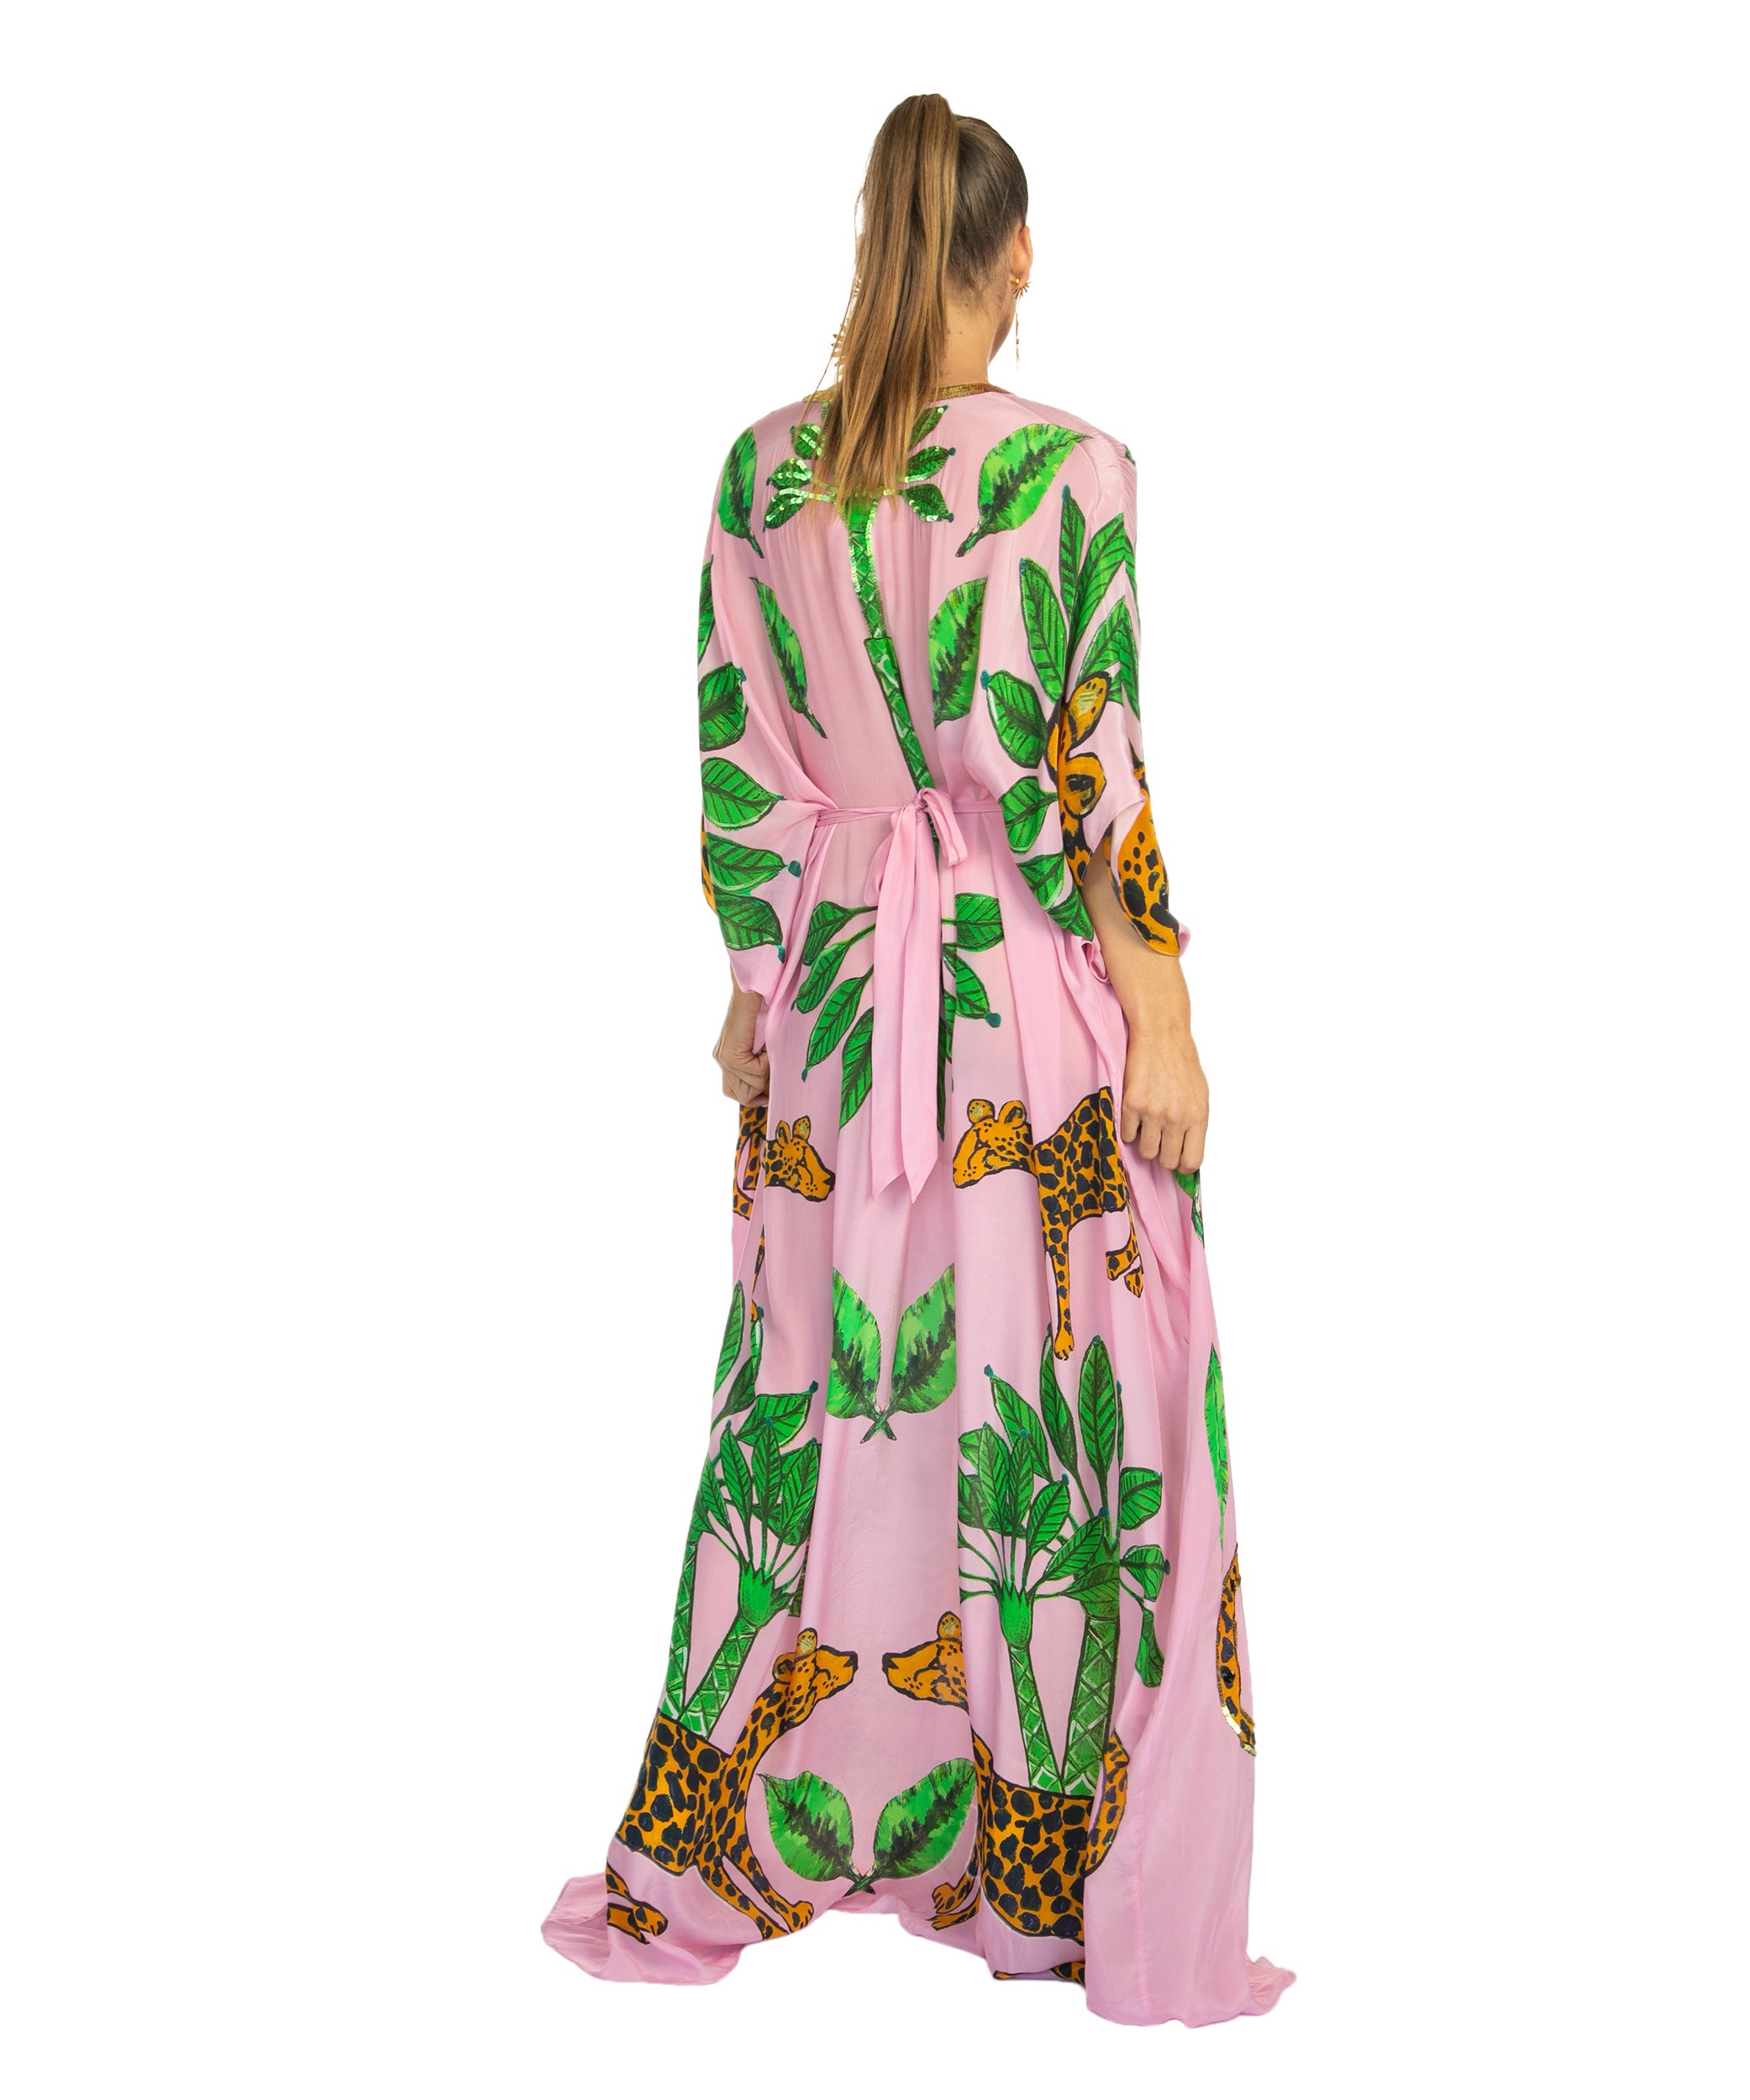 The Pink Guepardo Silk Dress